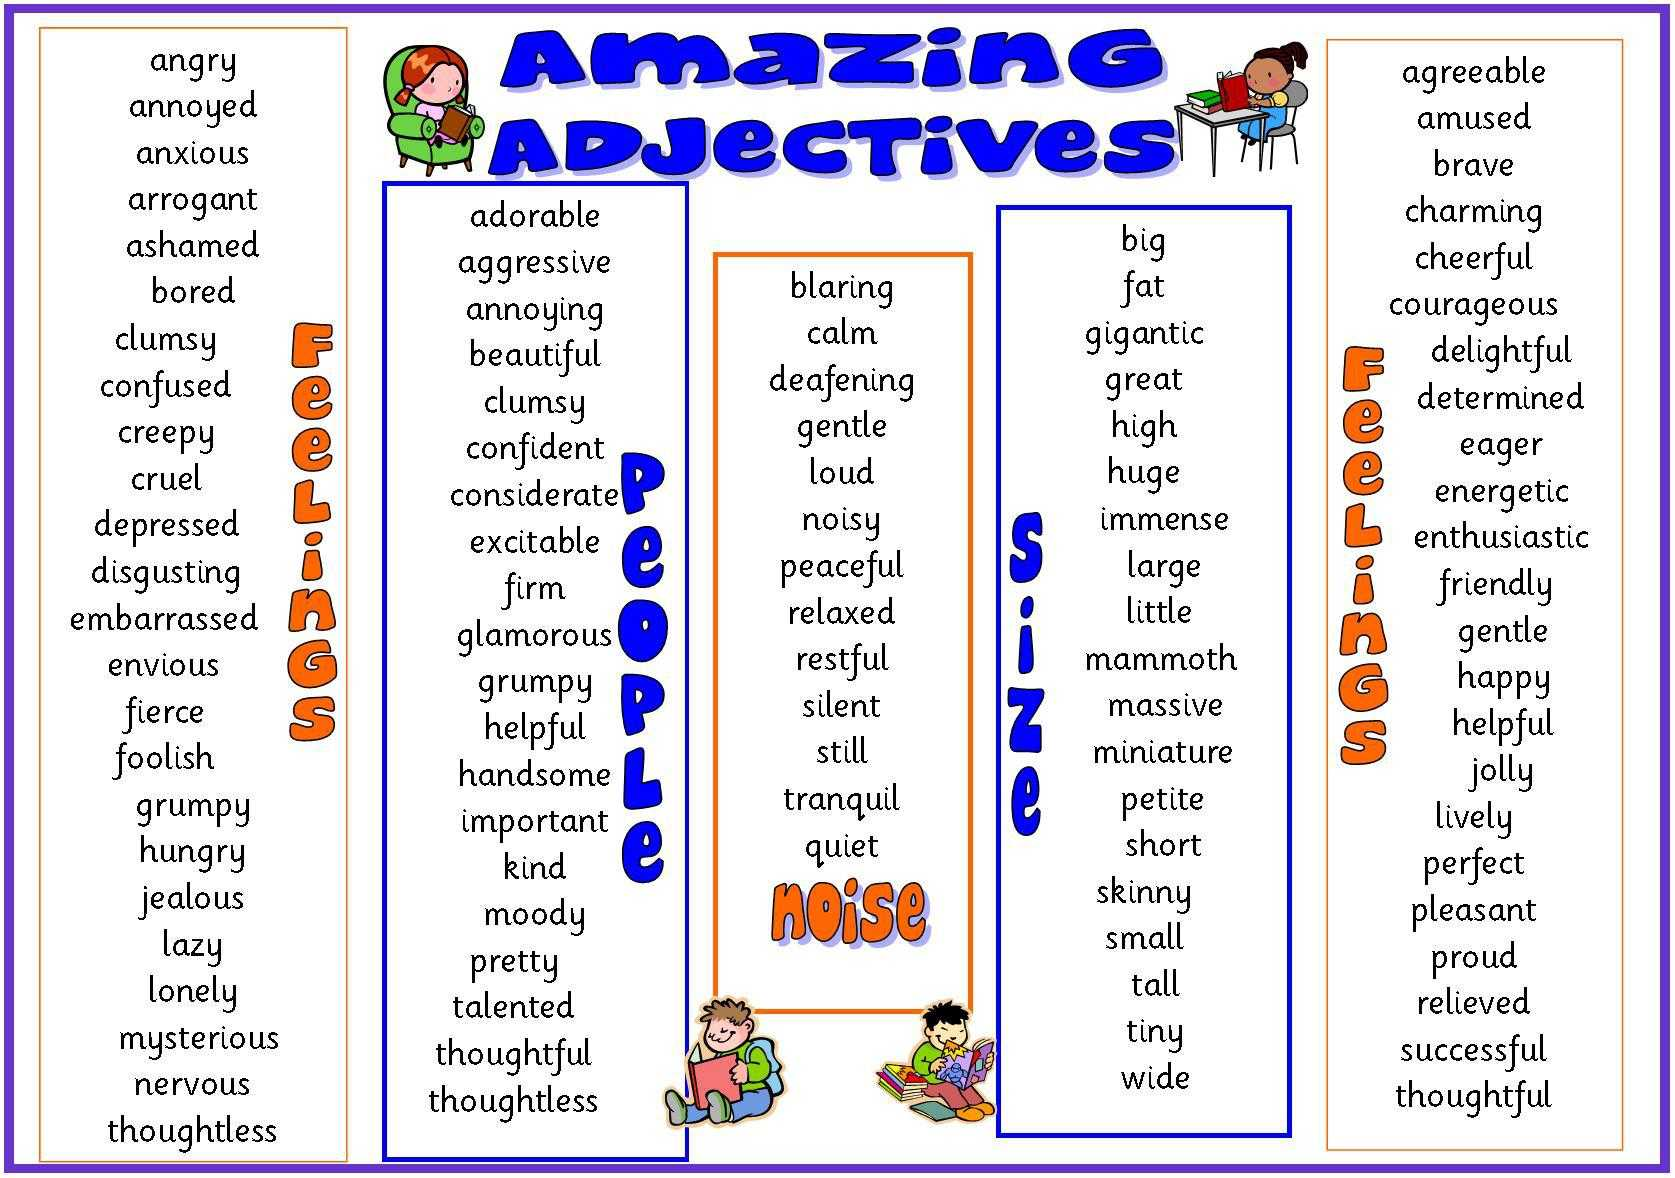 Super Size Me Film Worksheet Answers as Well as Describing People Adjectives